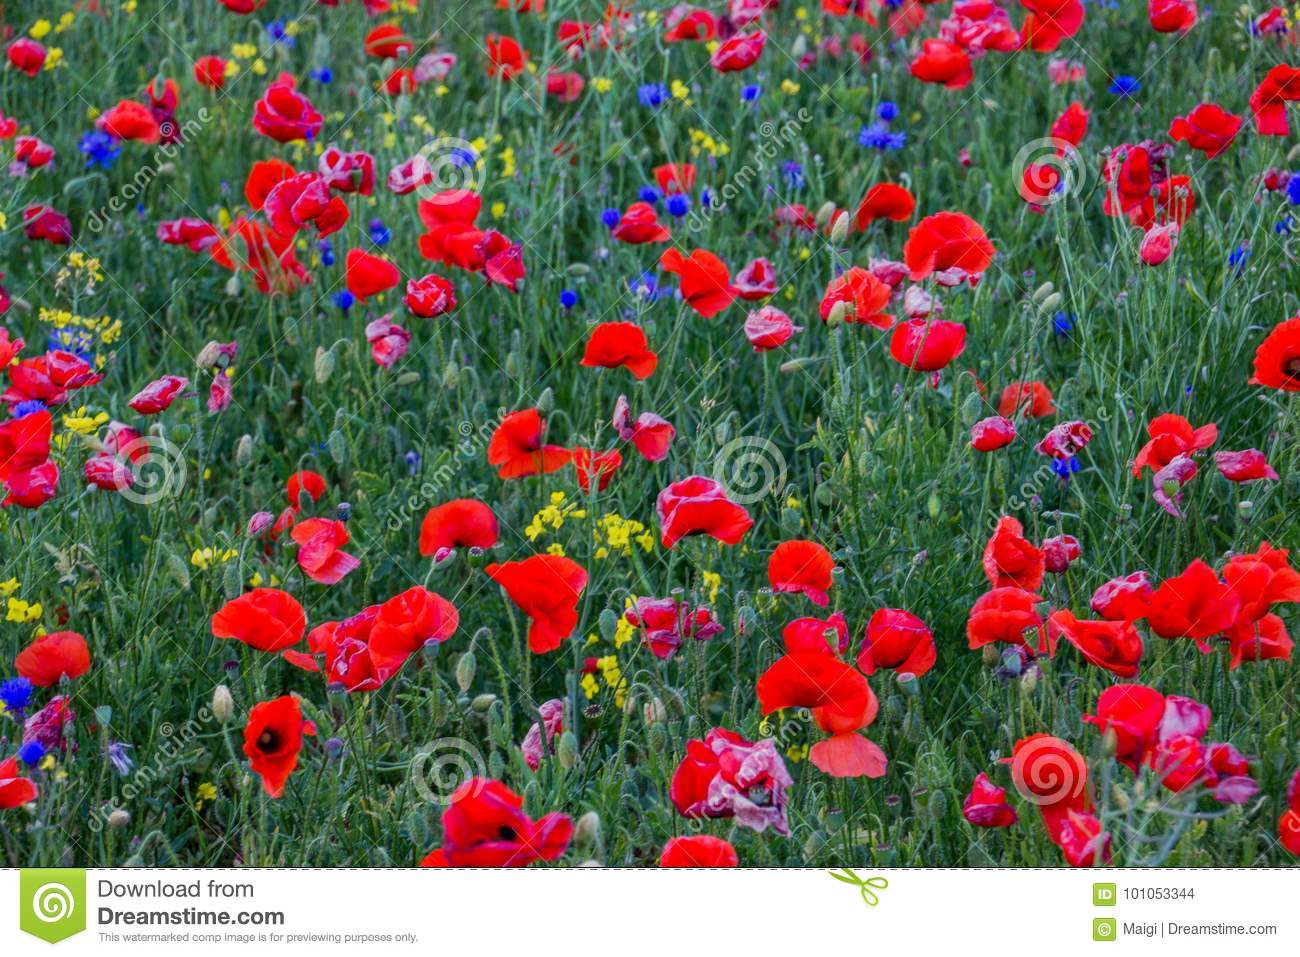 Download Poppies And Cornflowers Field Background Stock Photo - Image of floral, flowers: 101053344